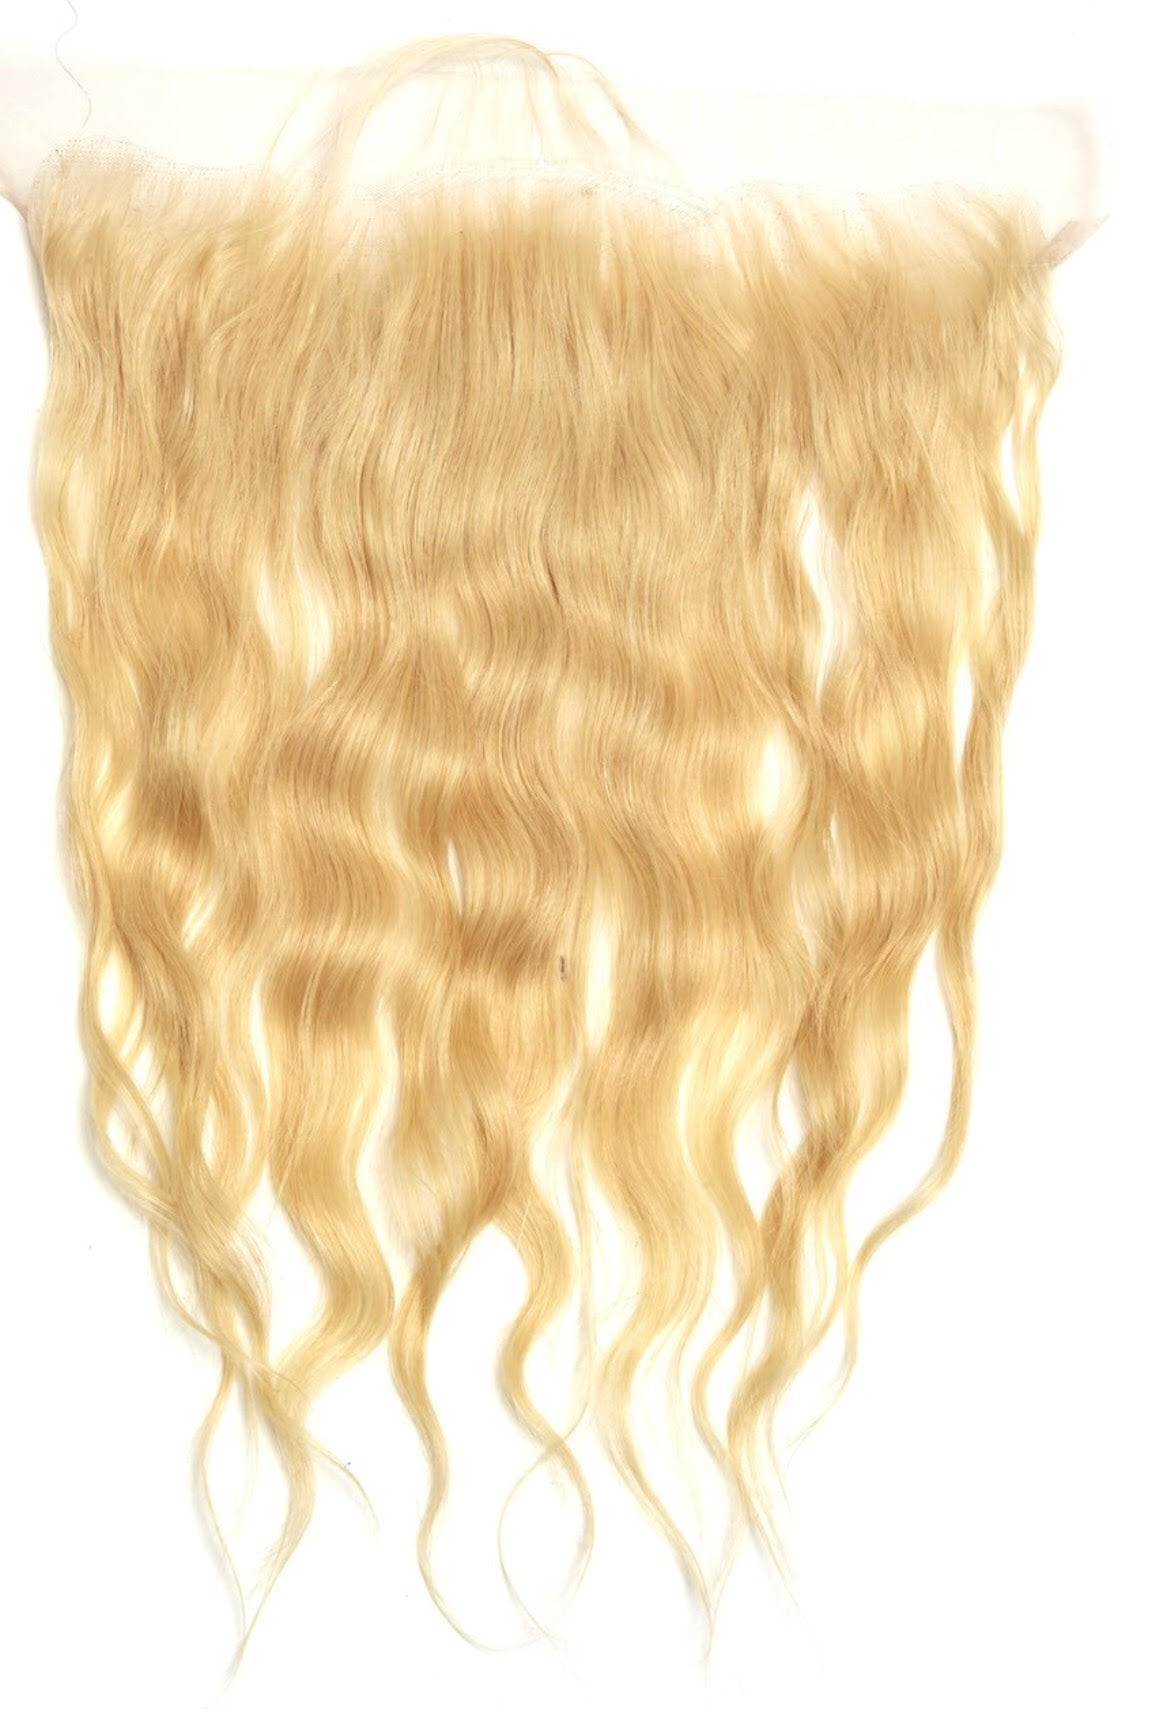 100% Raw Premium Blonde Frontal